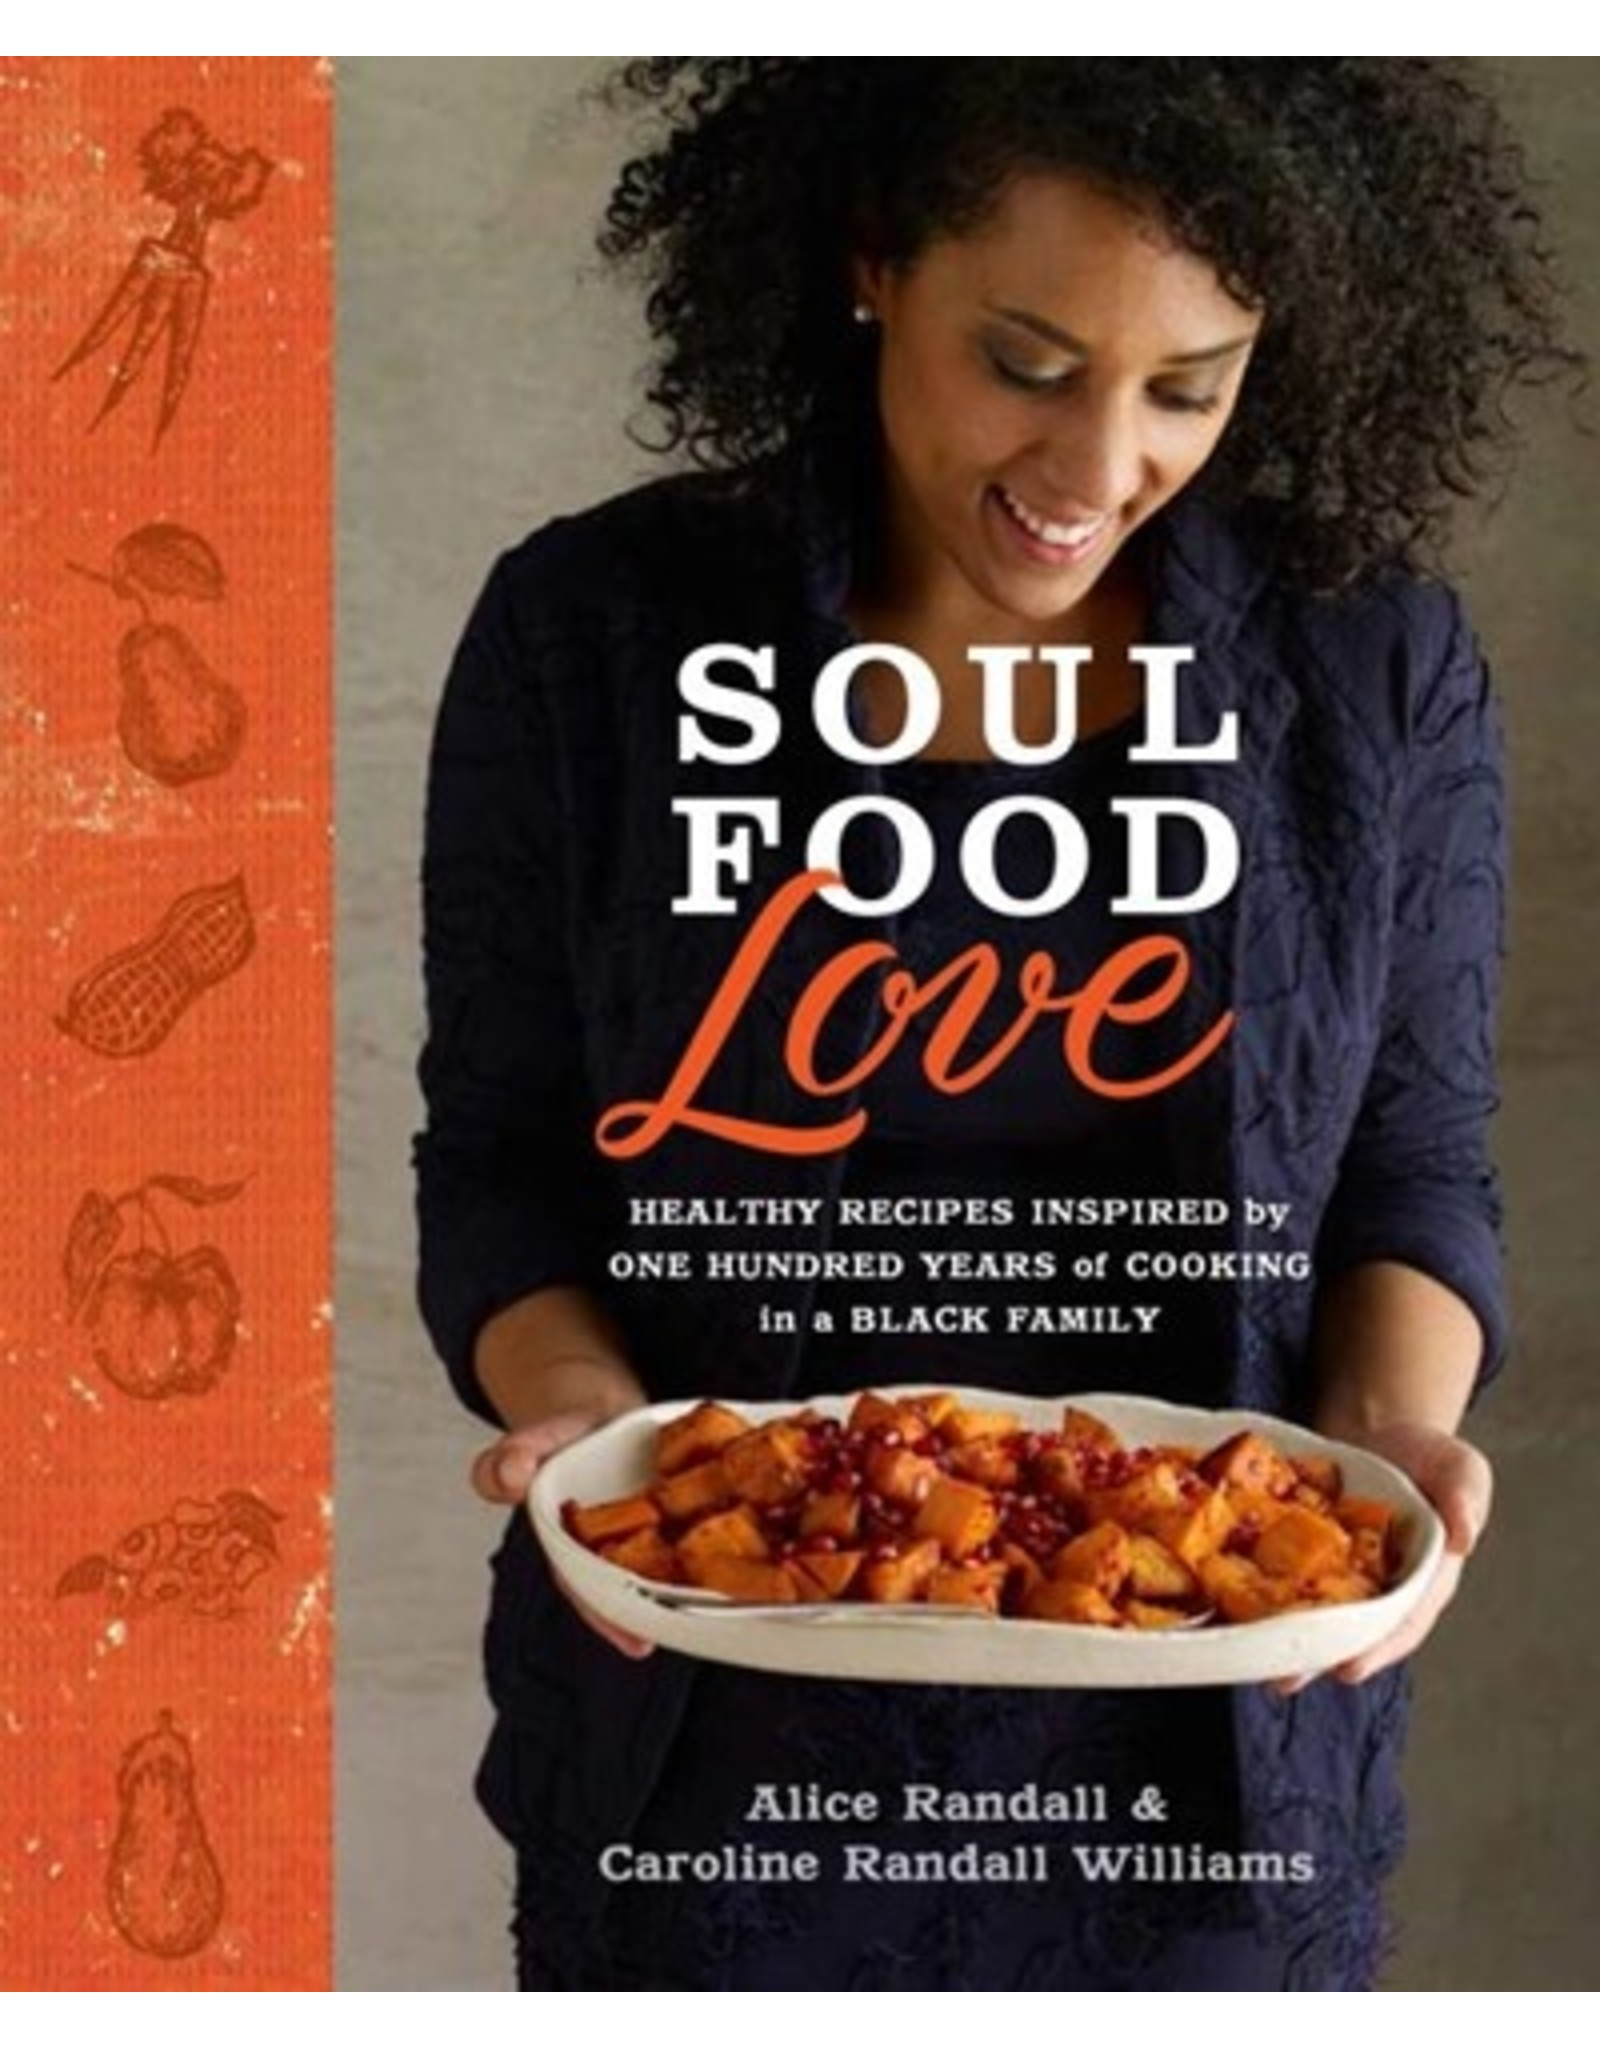 Books Soul Food Love : Healthy Recipes Inspired by One Hundred Years of Cooking in a Black Family :  A Cook Book by Alice Randall and Caroline Randall Williams (BBS)